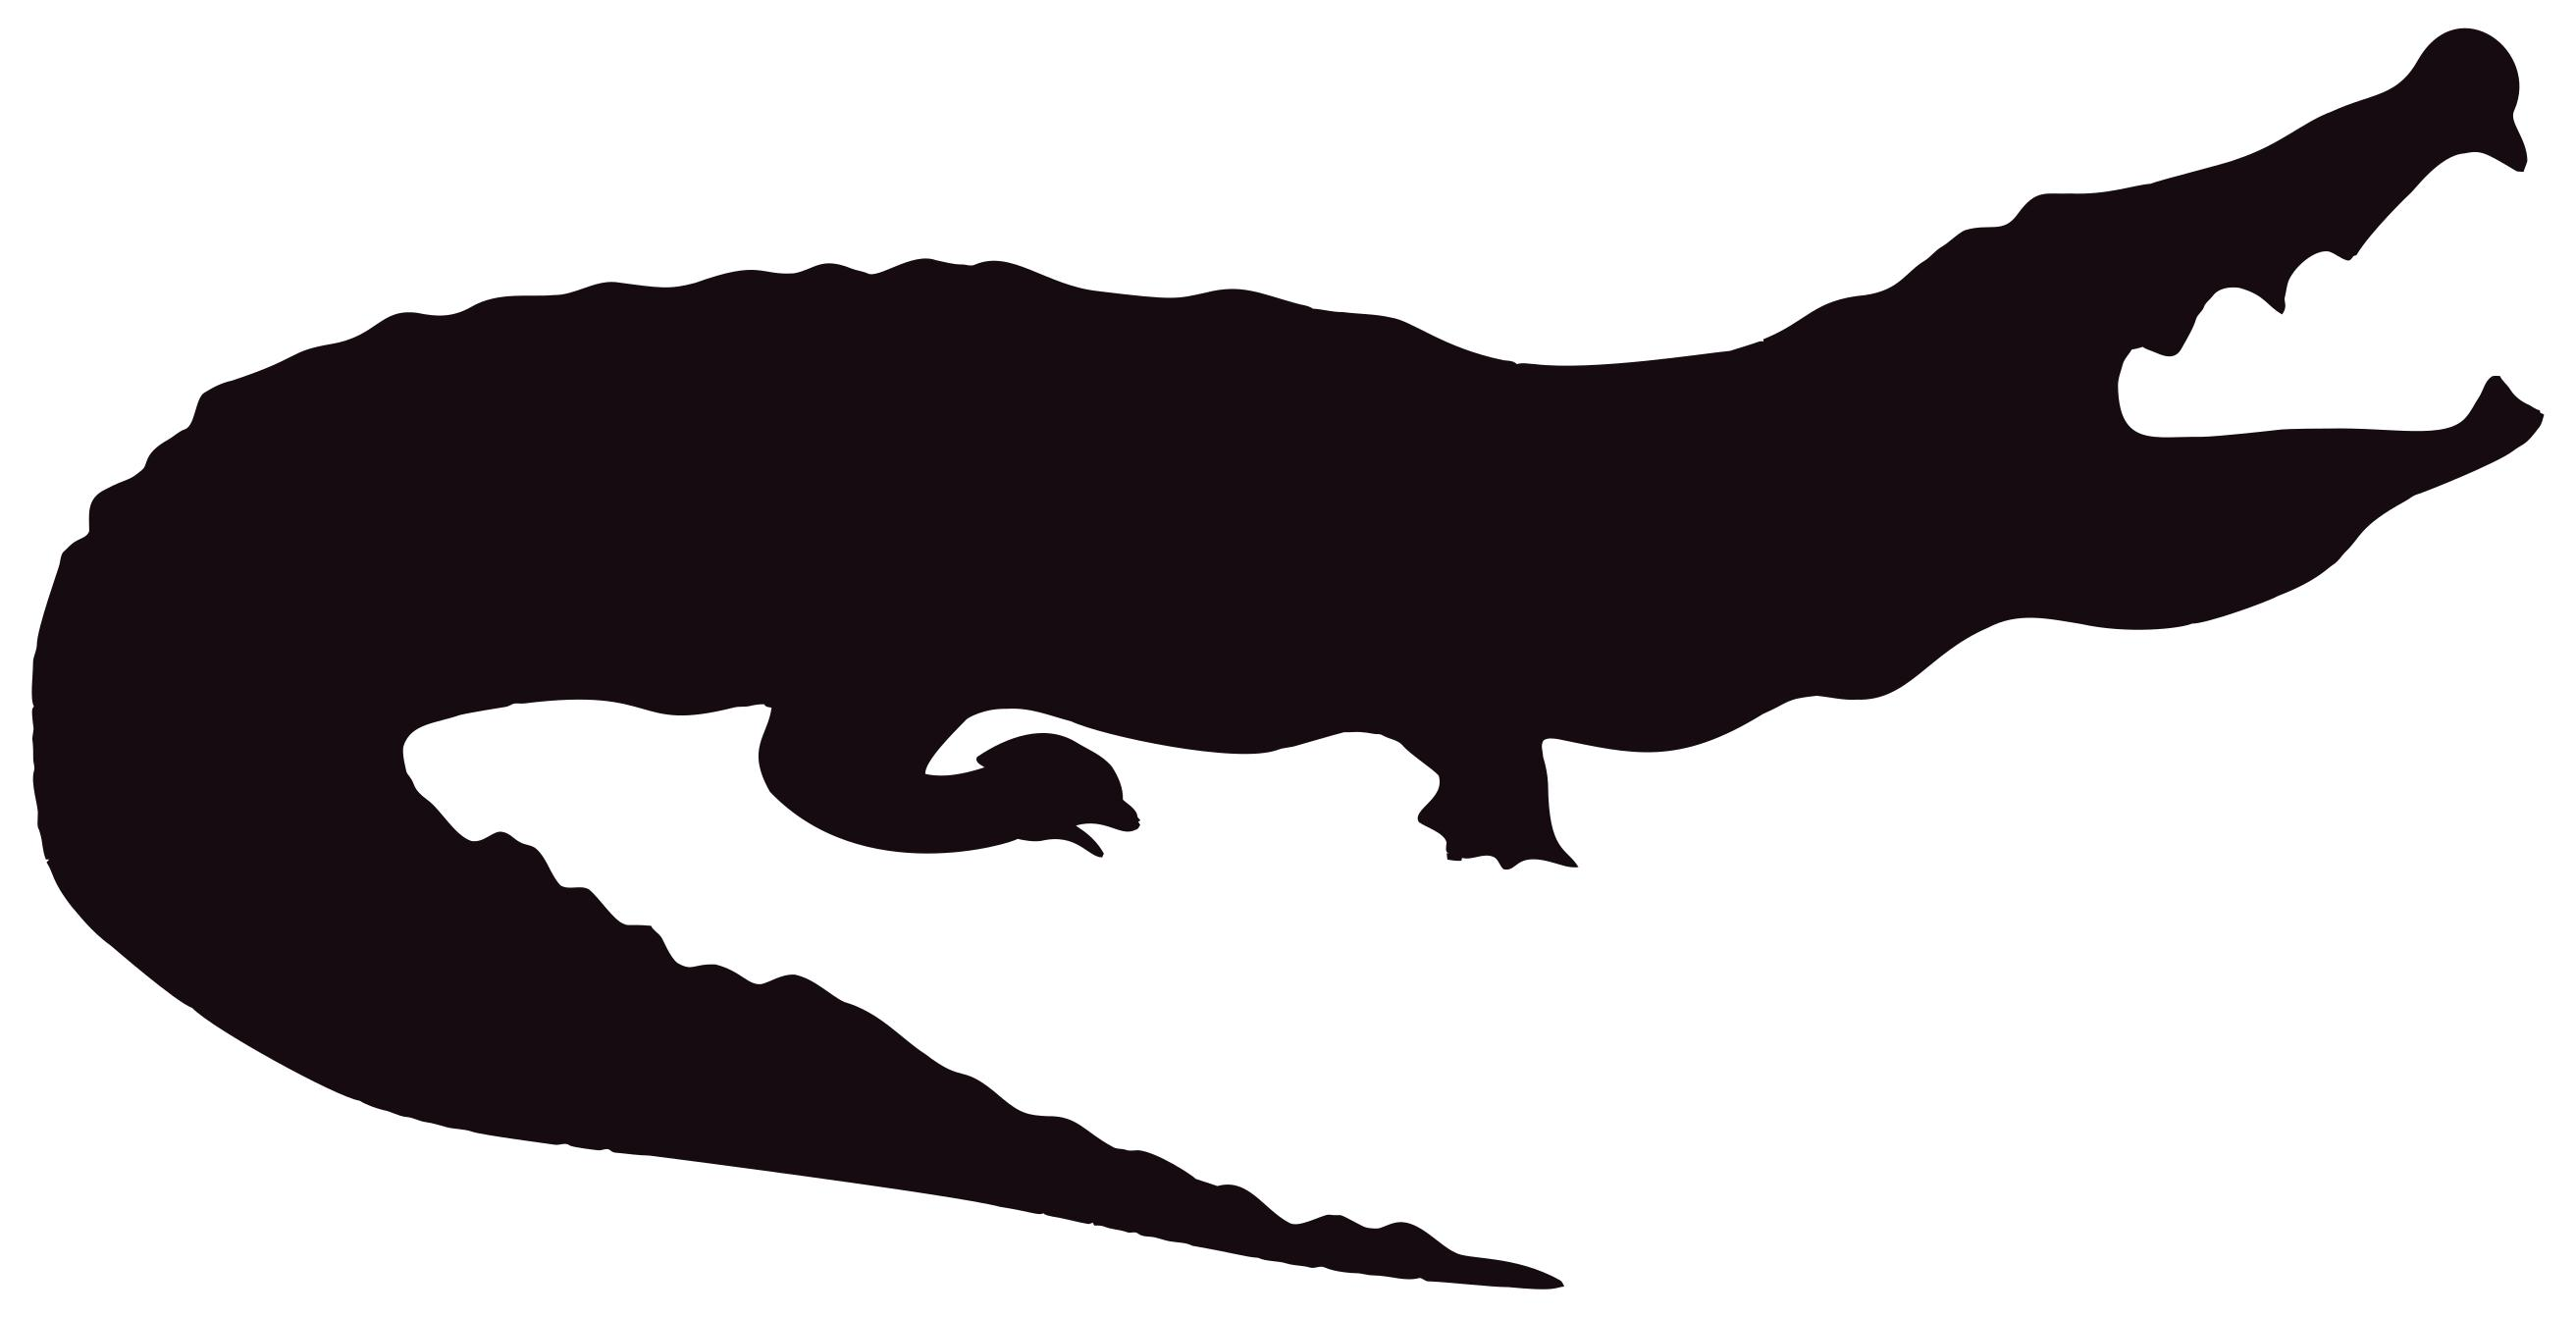 Crocodile Silhouette at GetDrawings.com.